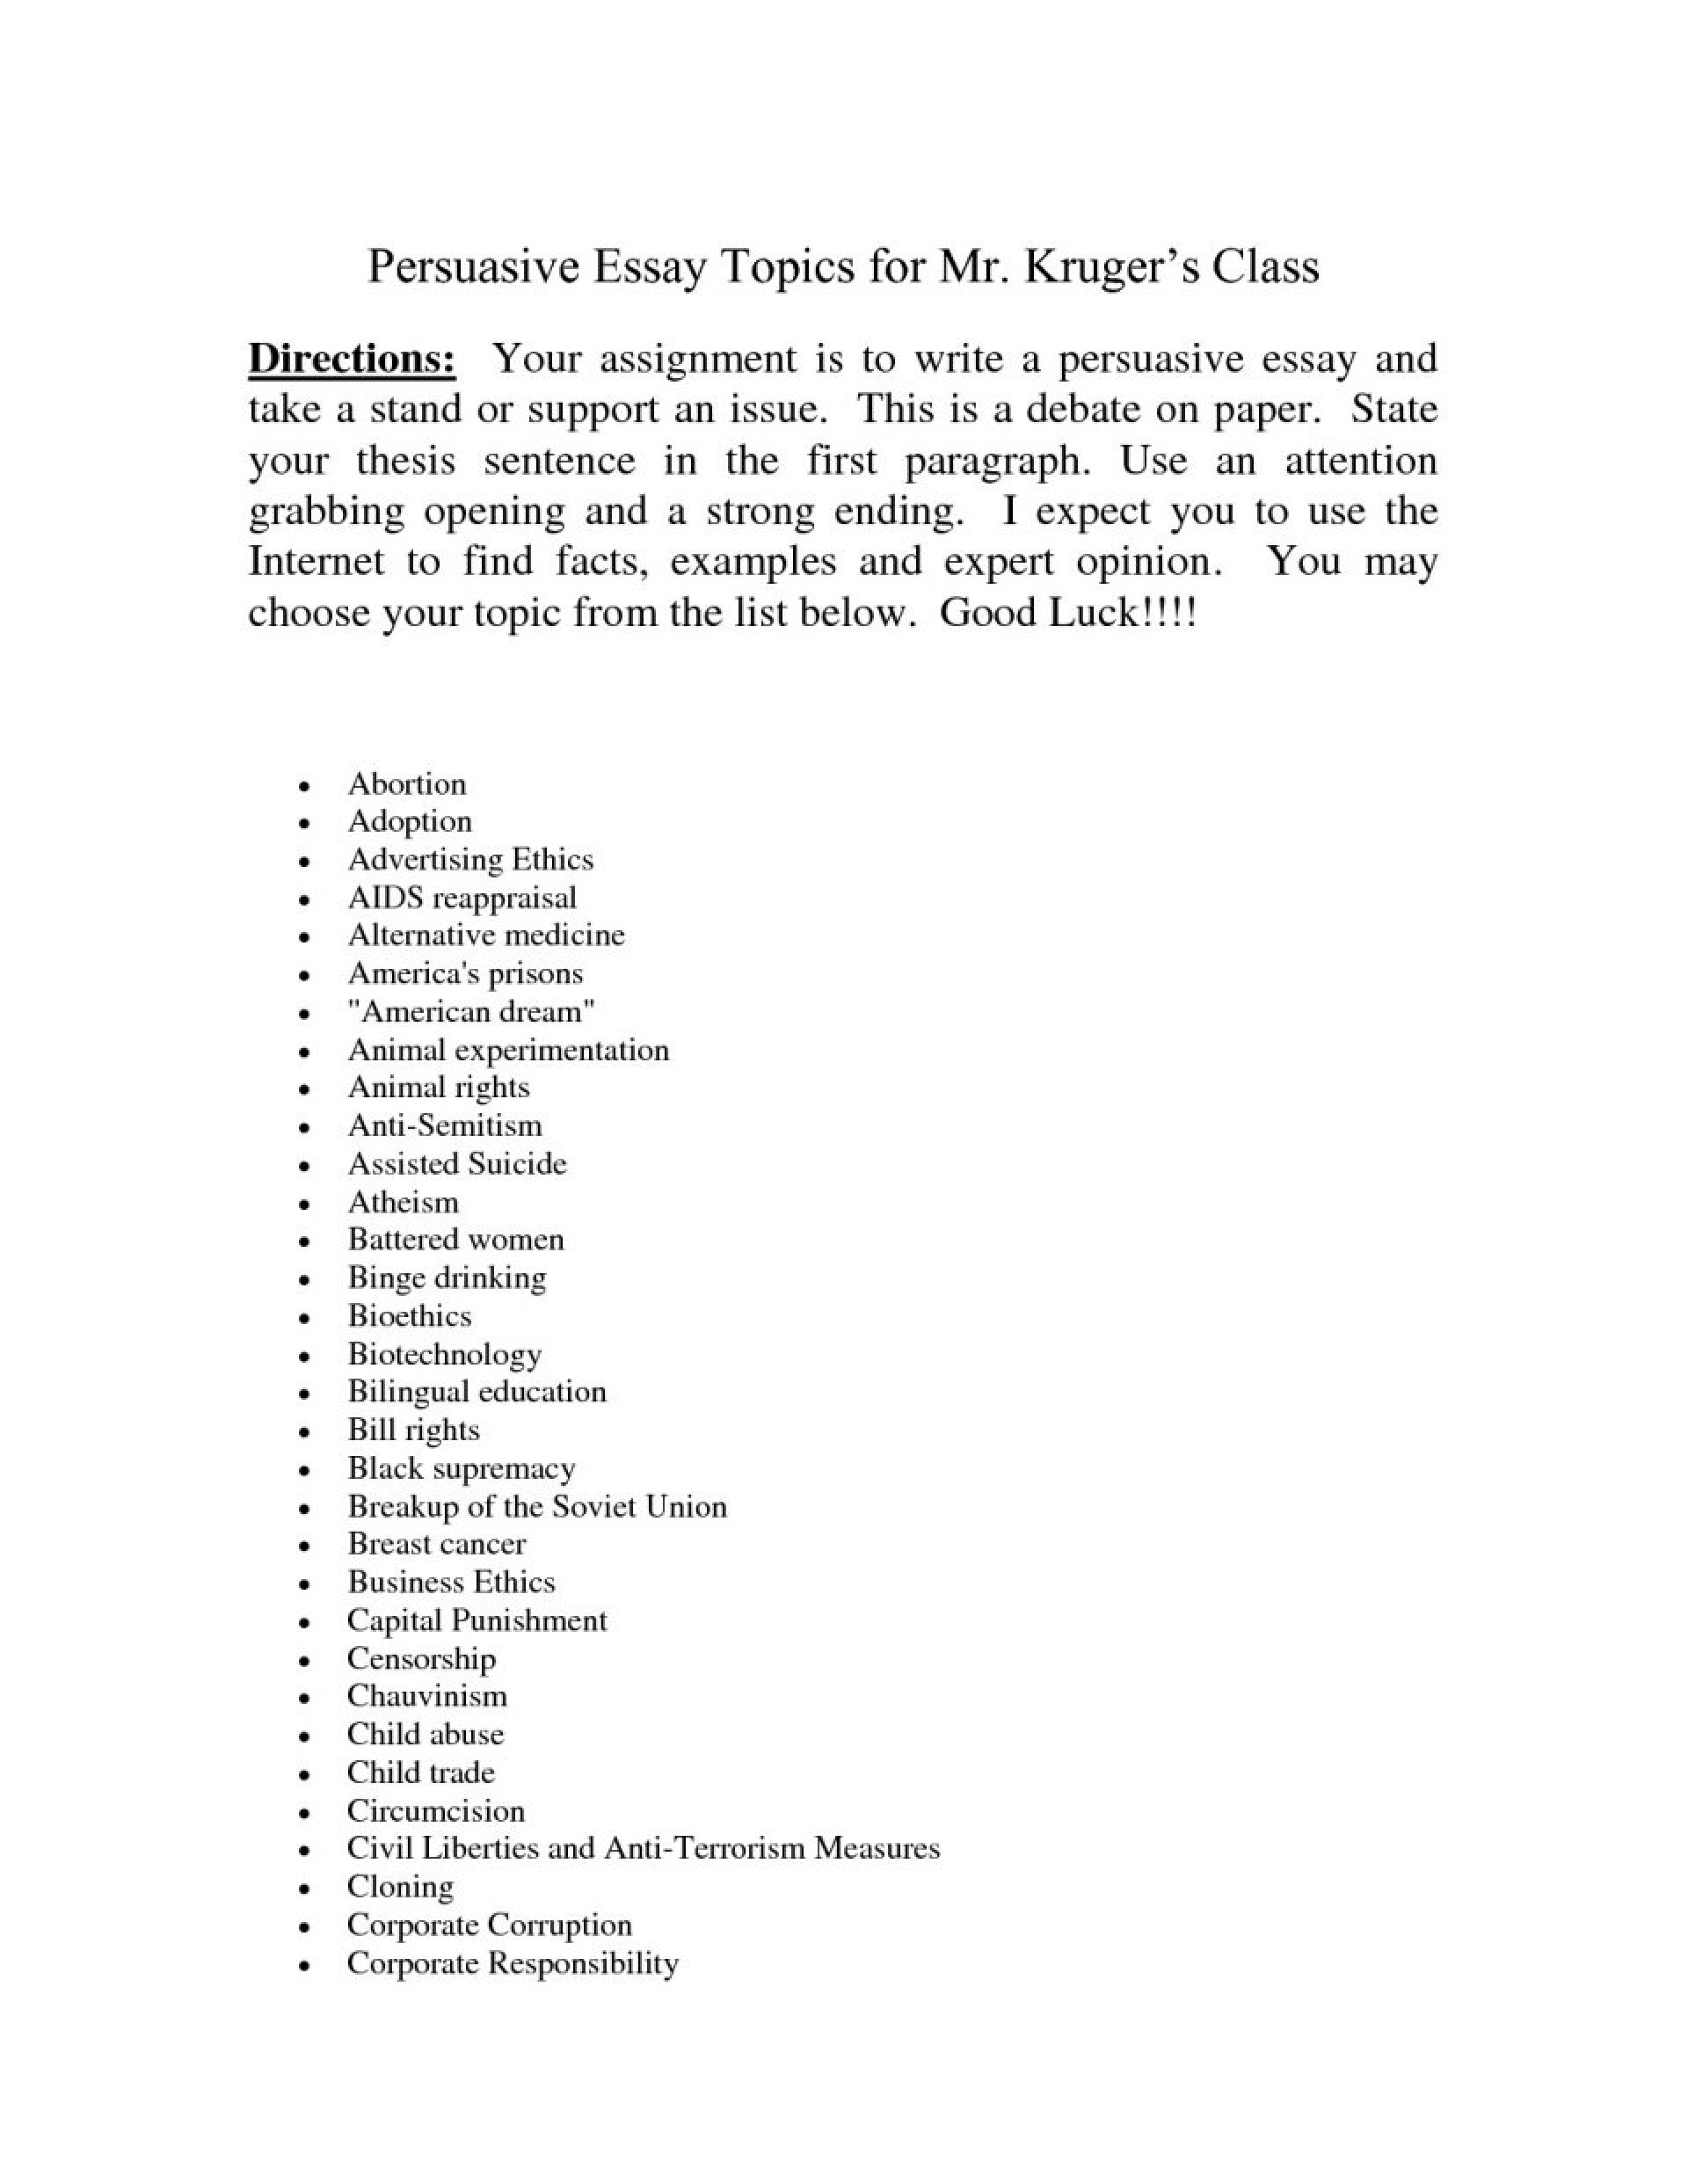 022 Interesting Topic For Research Paper Essay Barca Fontanacountryinn Within Good Persuasive Narrative Topics To Write Abo Easy About Personal Descriptive Informative Synthesis Breathtaking In Physical Education Finance Nutrition 1920